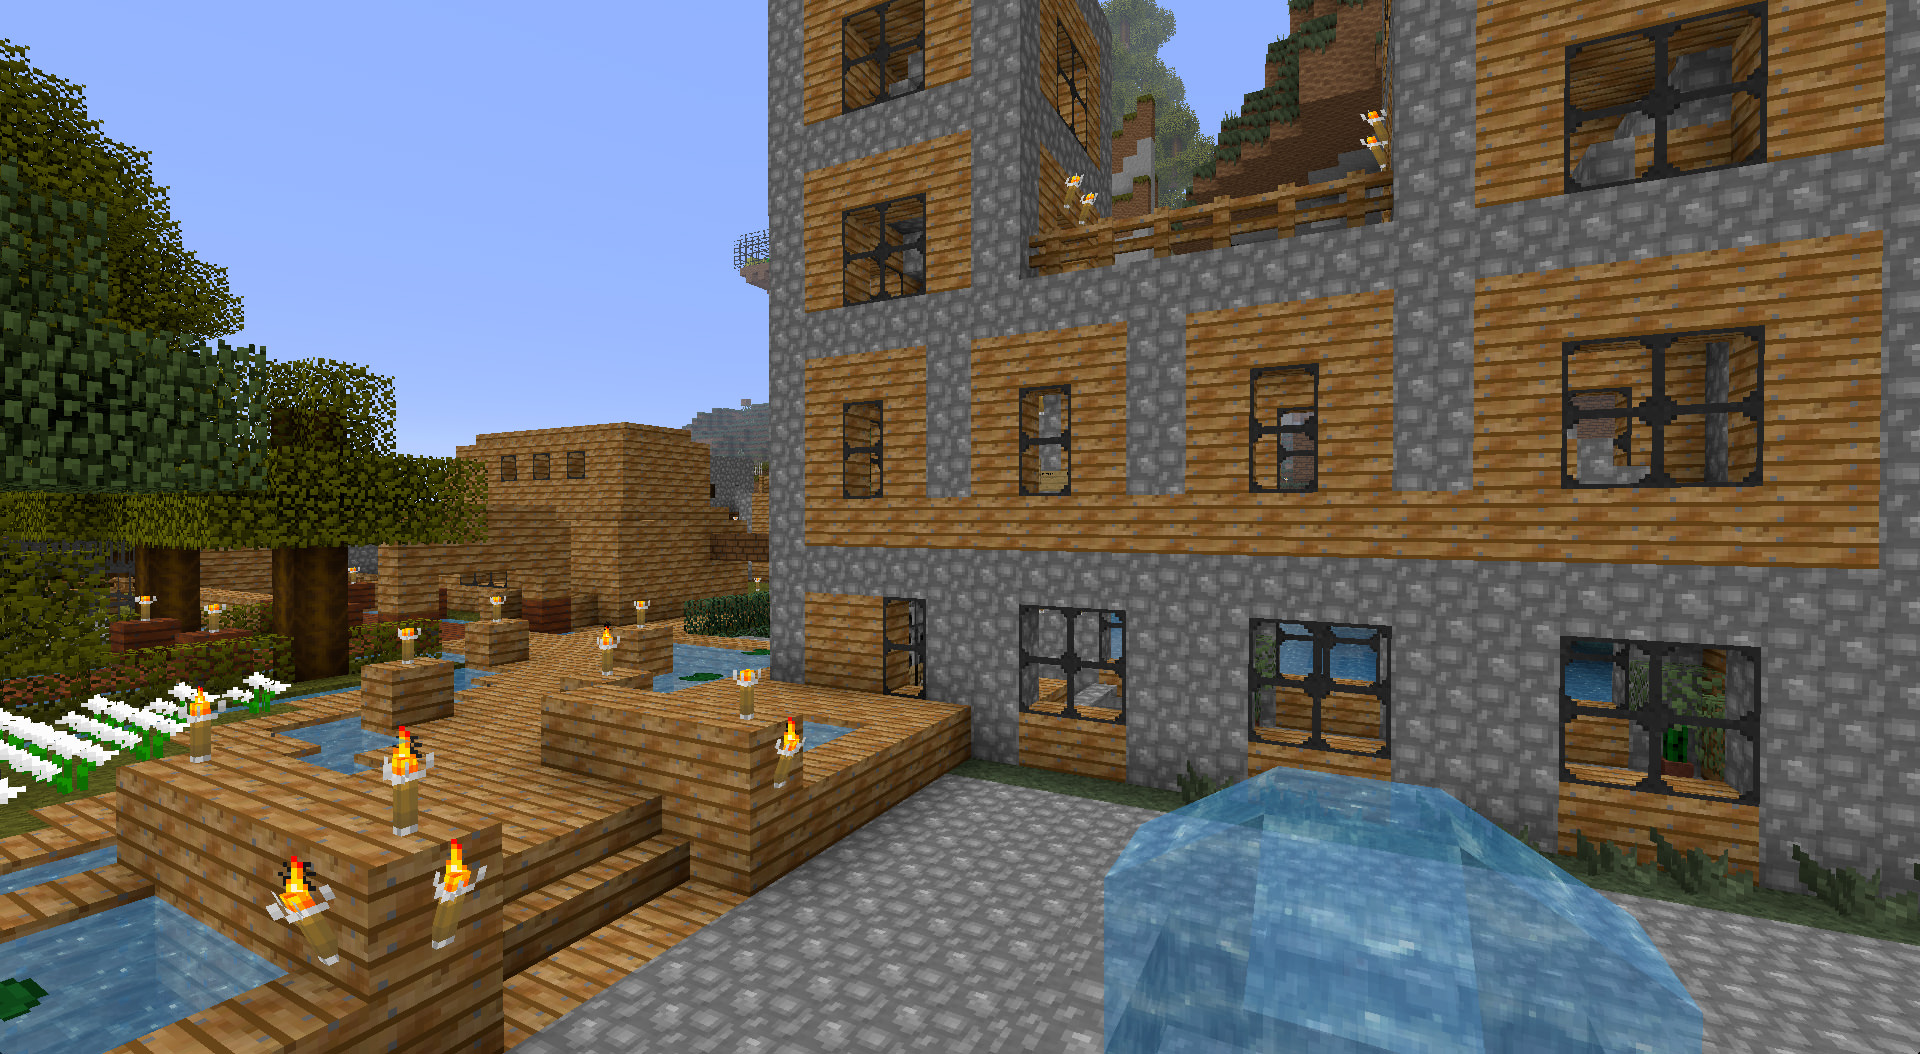 Minecraft Adventure Craft Texture Pack